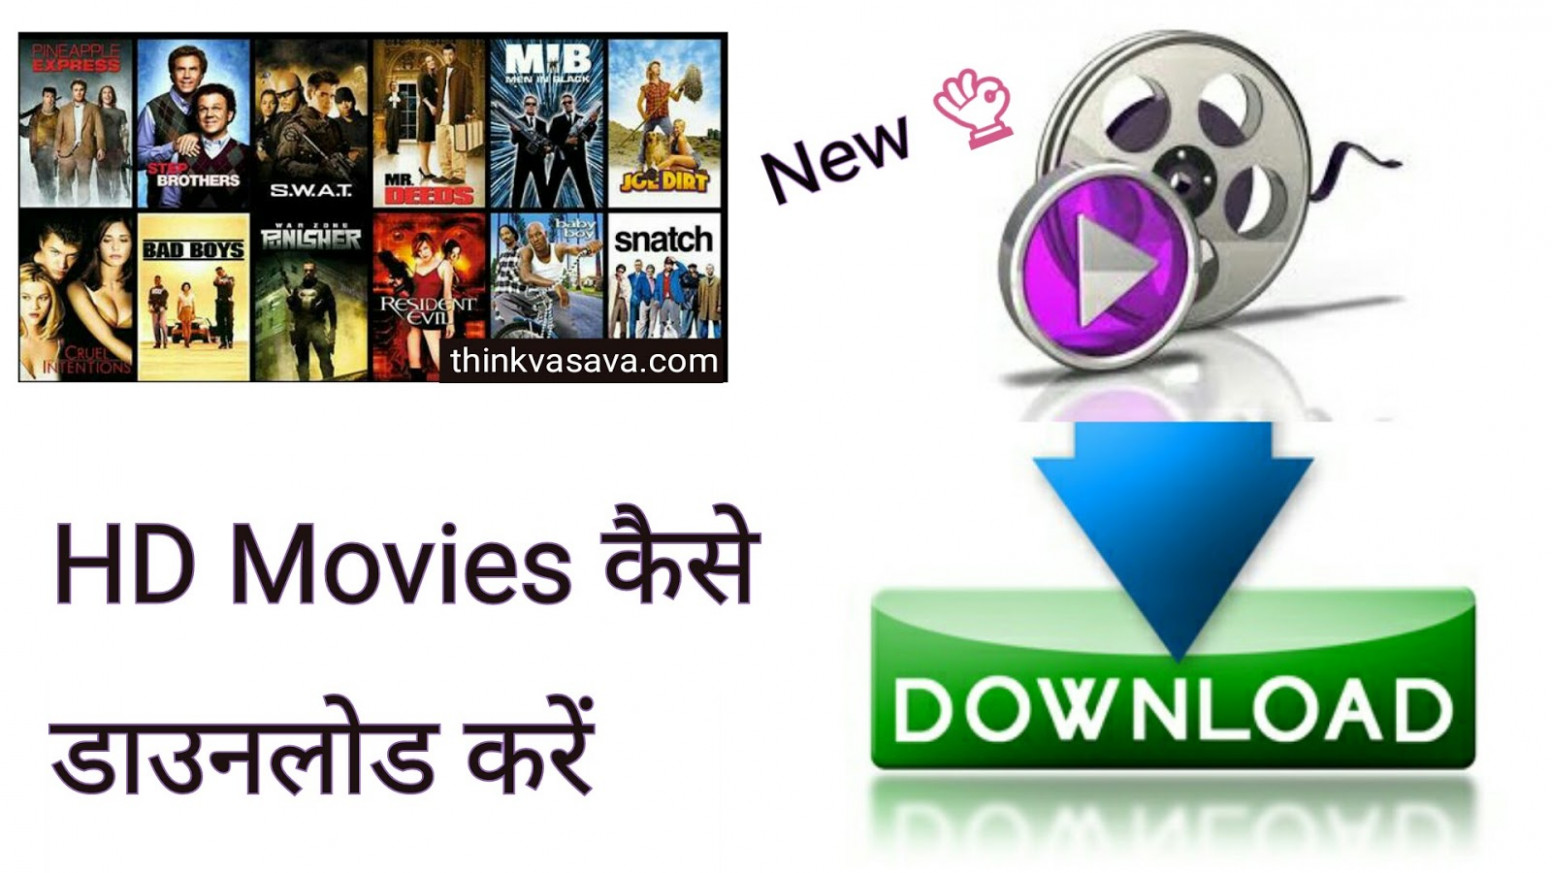 Free HD Movies Kaise Download Kare - Top 5 Websites